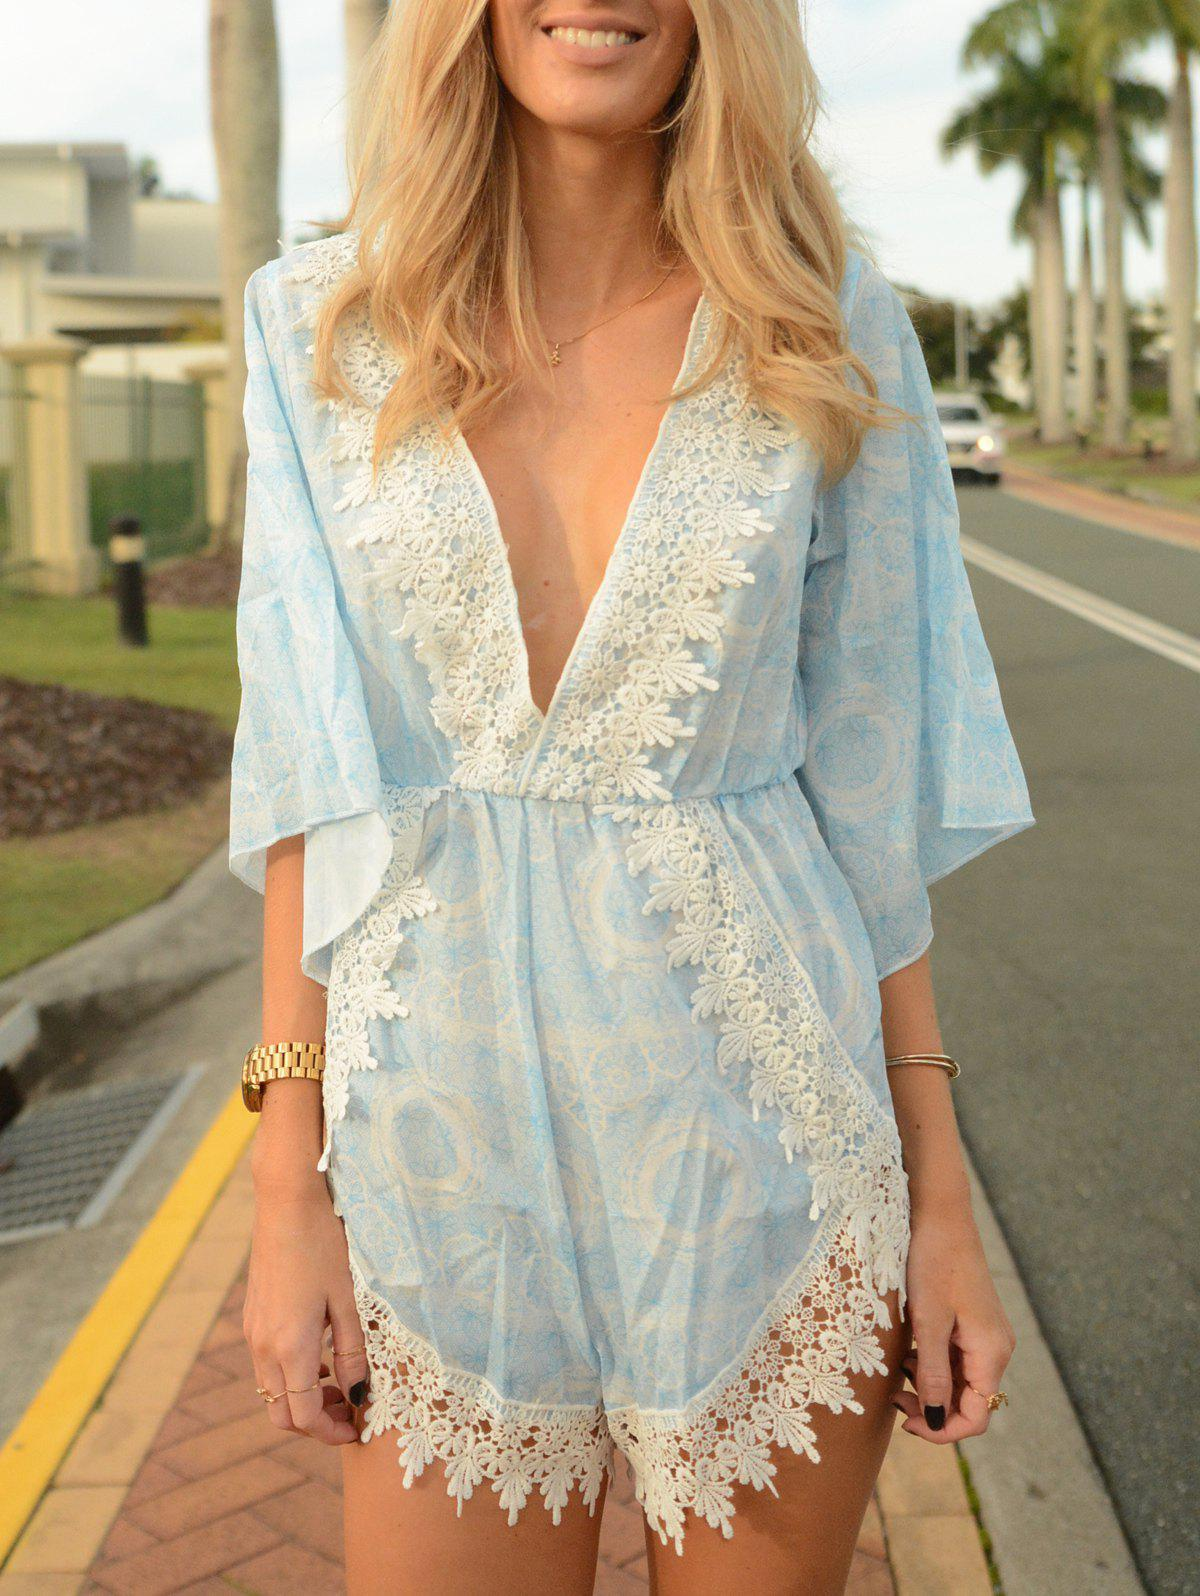 Shops Stylish Plunging Neck Printed Lace Embellished Women's Romper